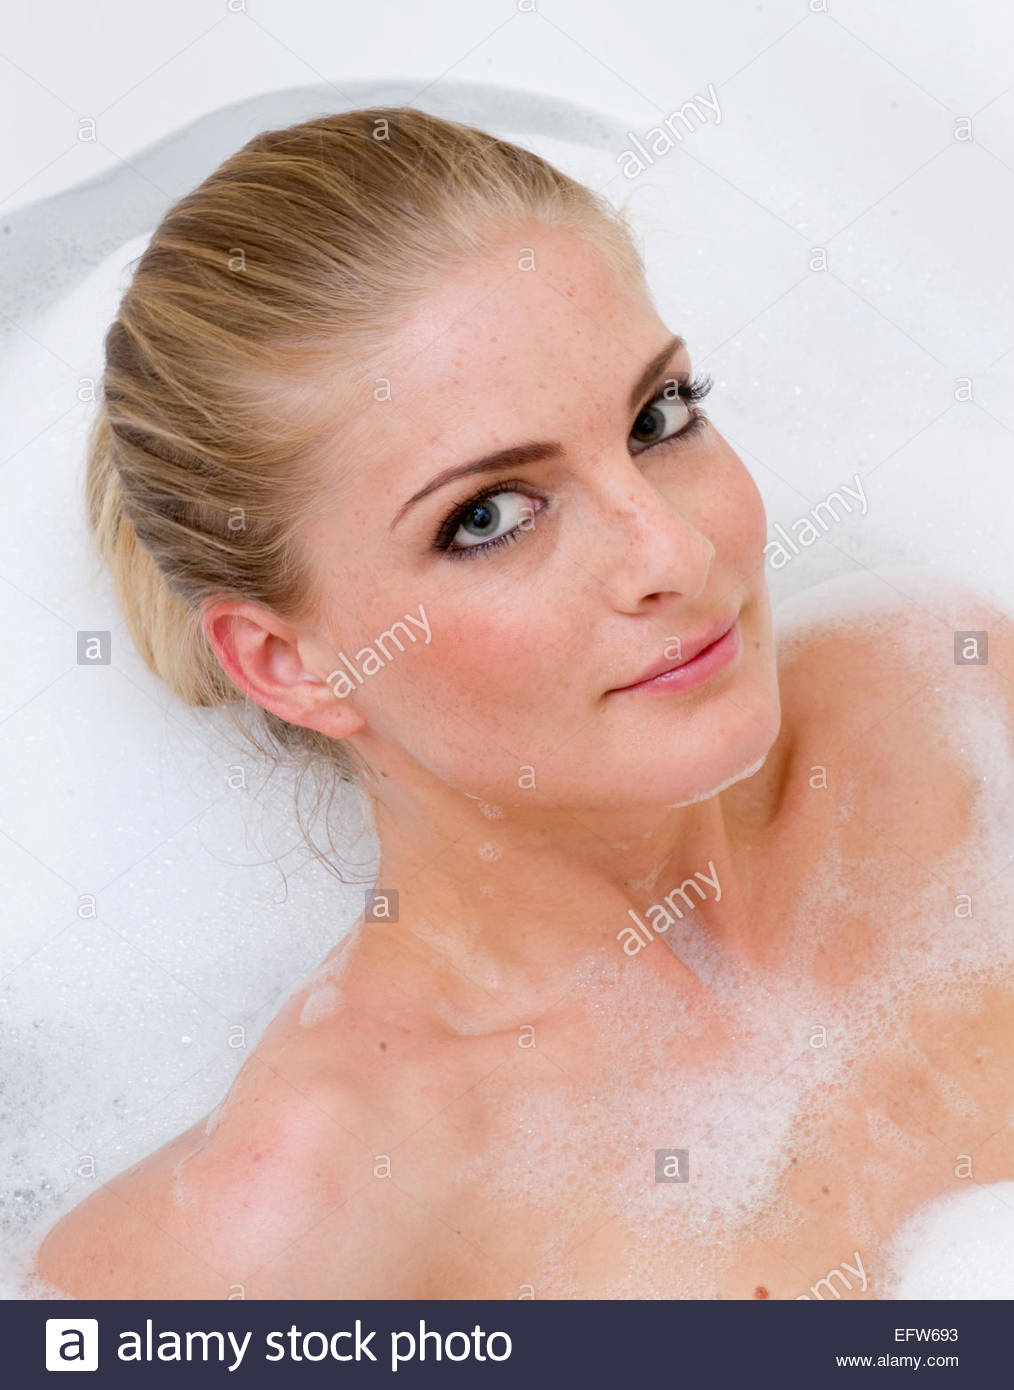 Young face portrait alone adult attractive Smiling Face Woman Bathtub Shampoo Washing Hair Lifestyle Portrait Young Stock Photo